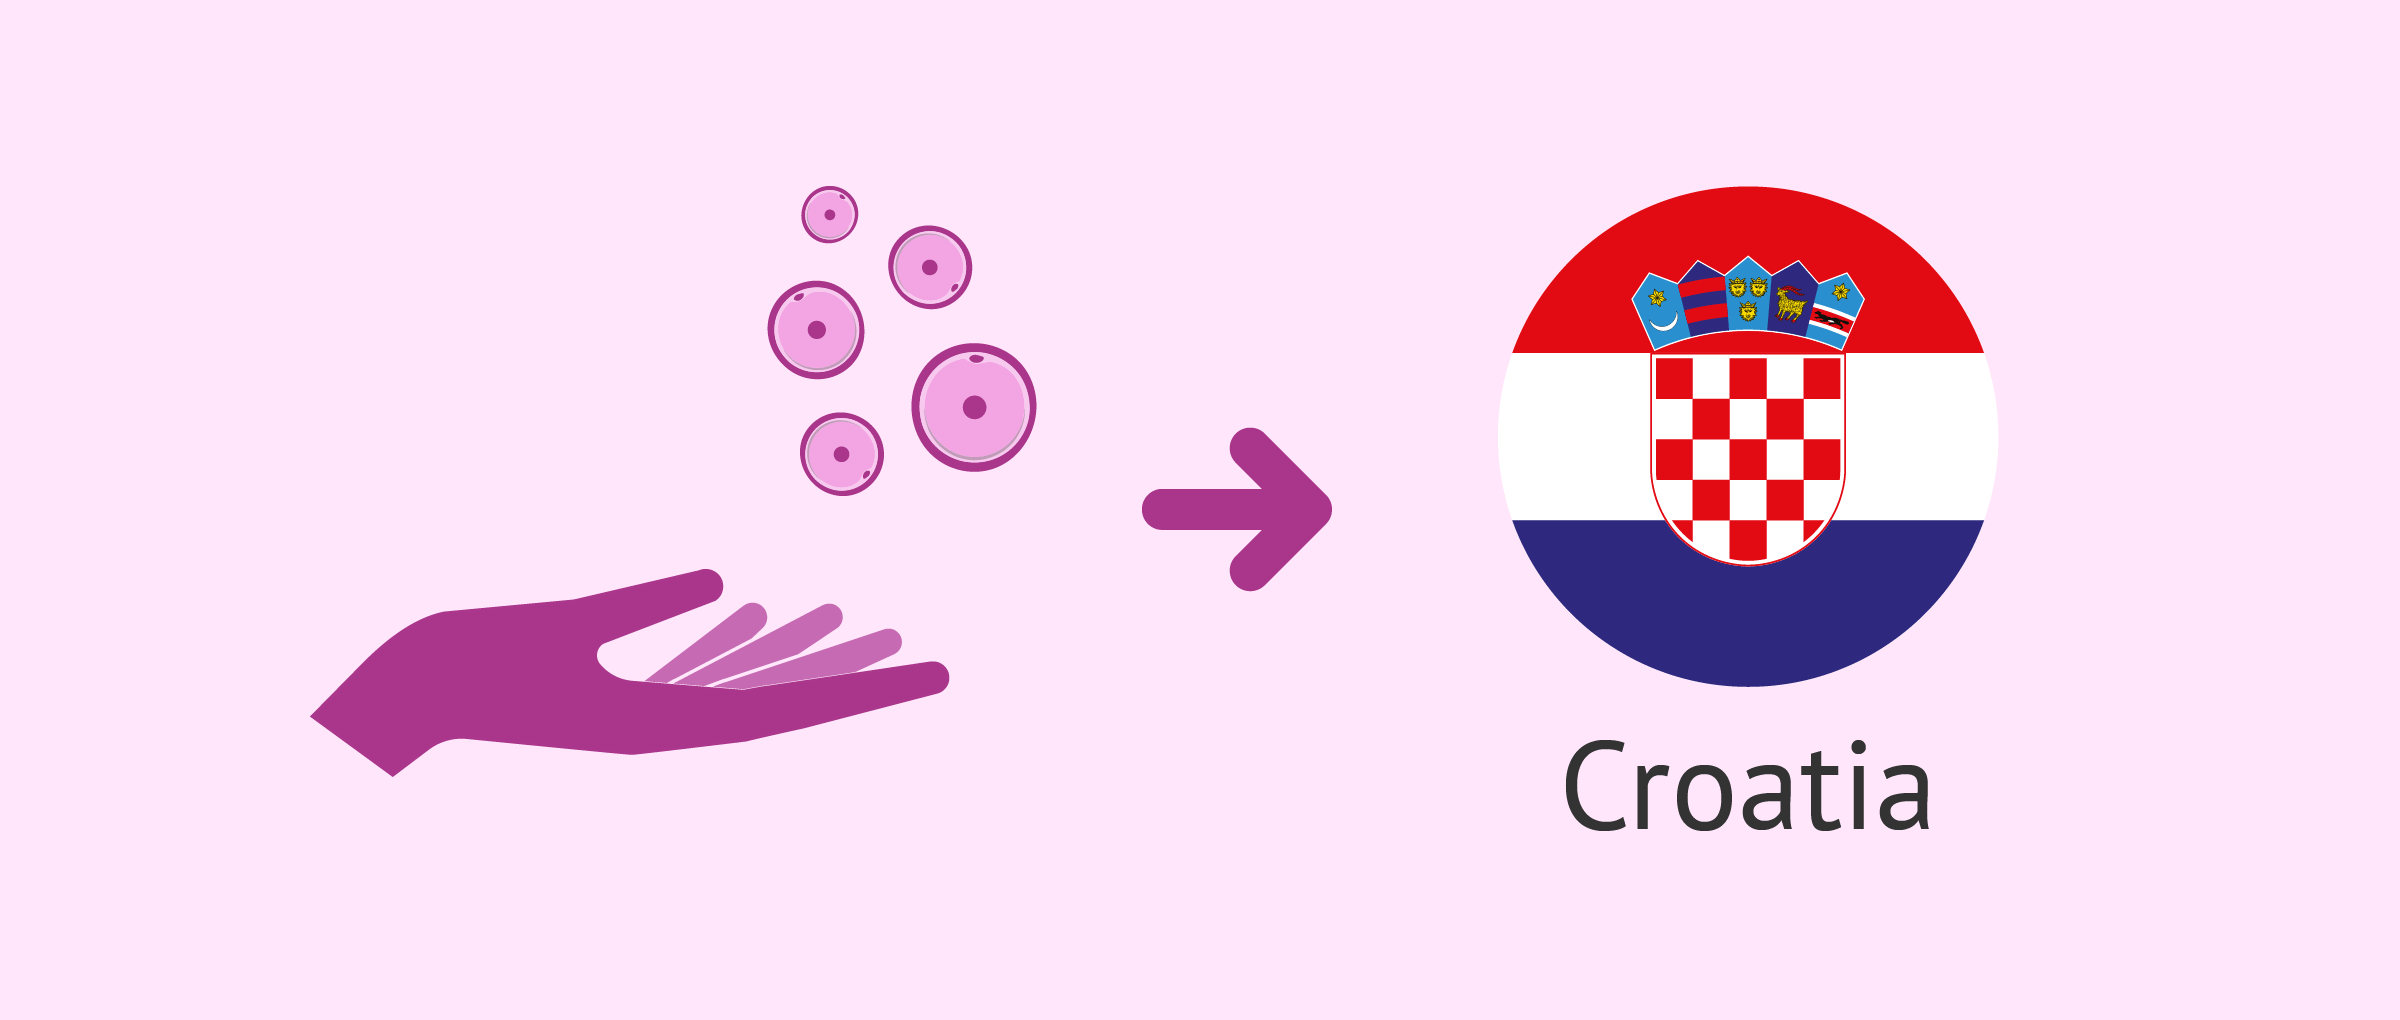 Egg Donation in Croatia